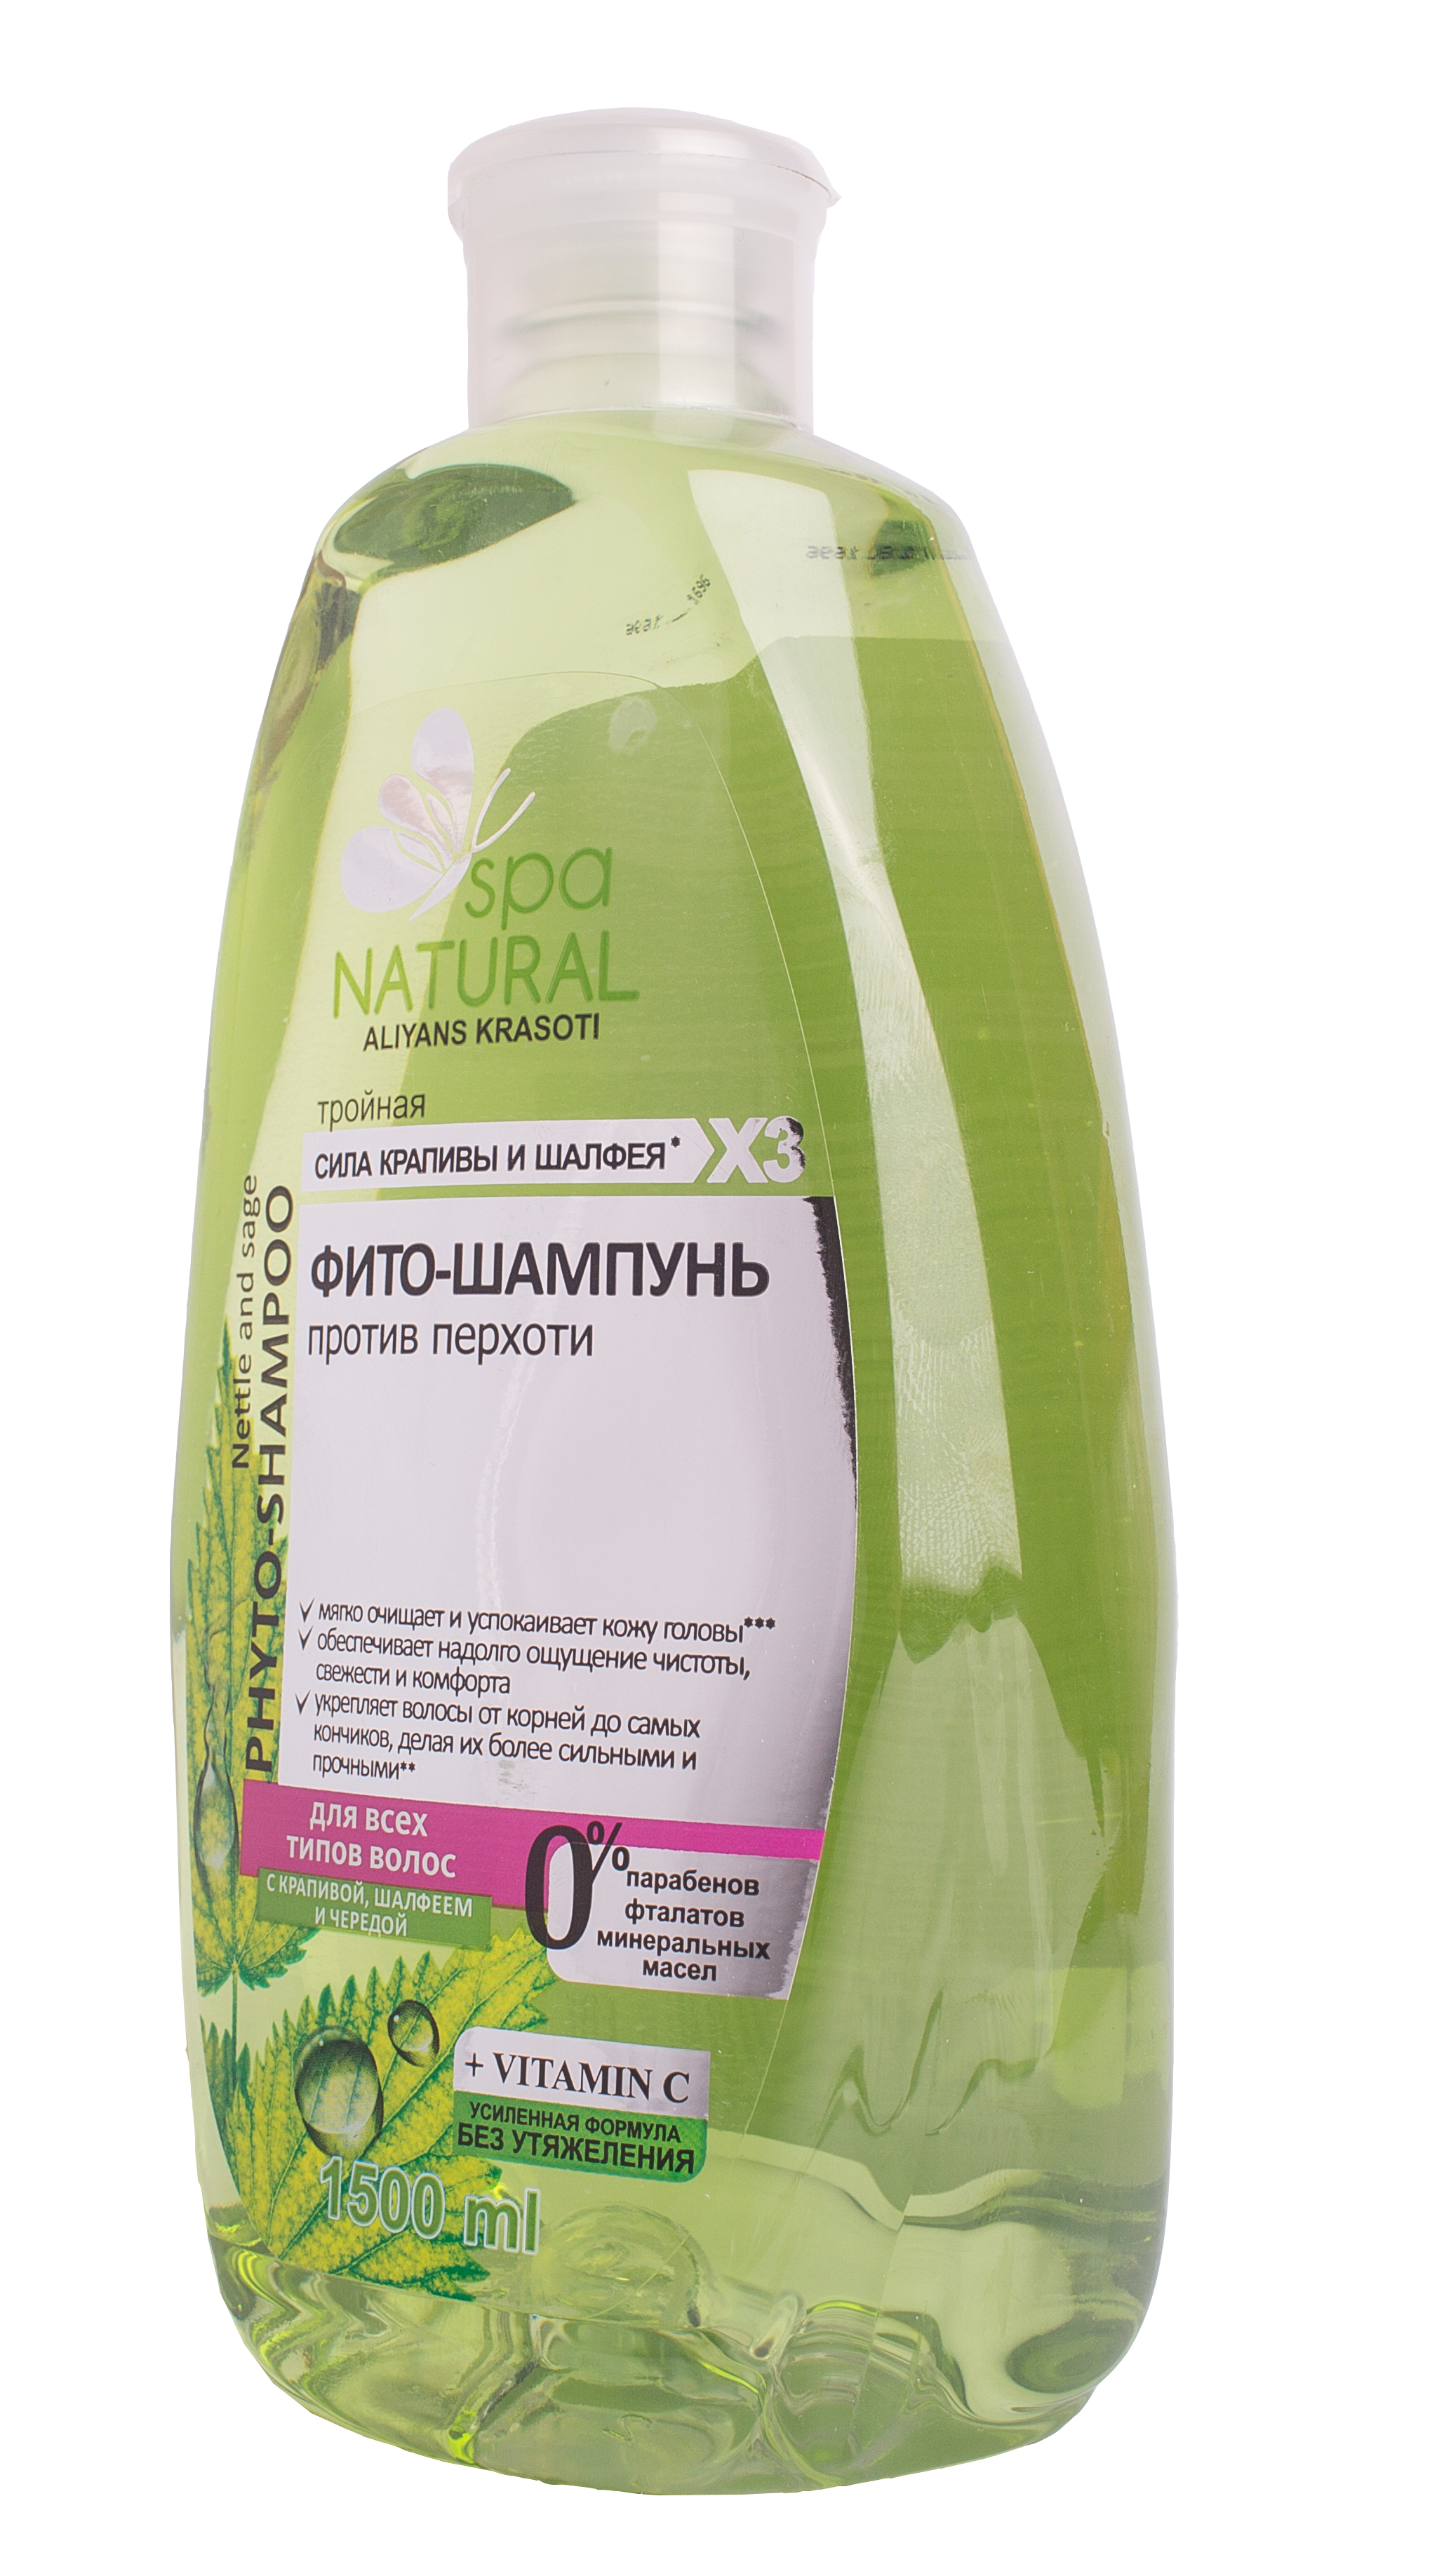 PHYTO-SHAMPOO ANTIDANDRUFF for all hair types